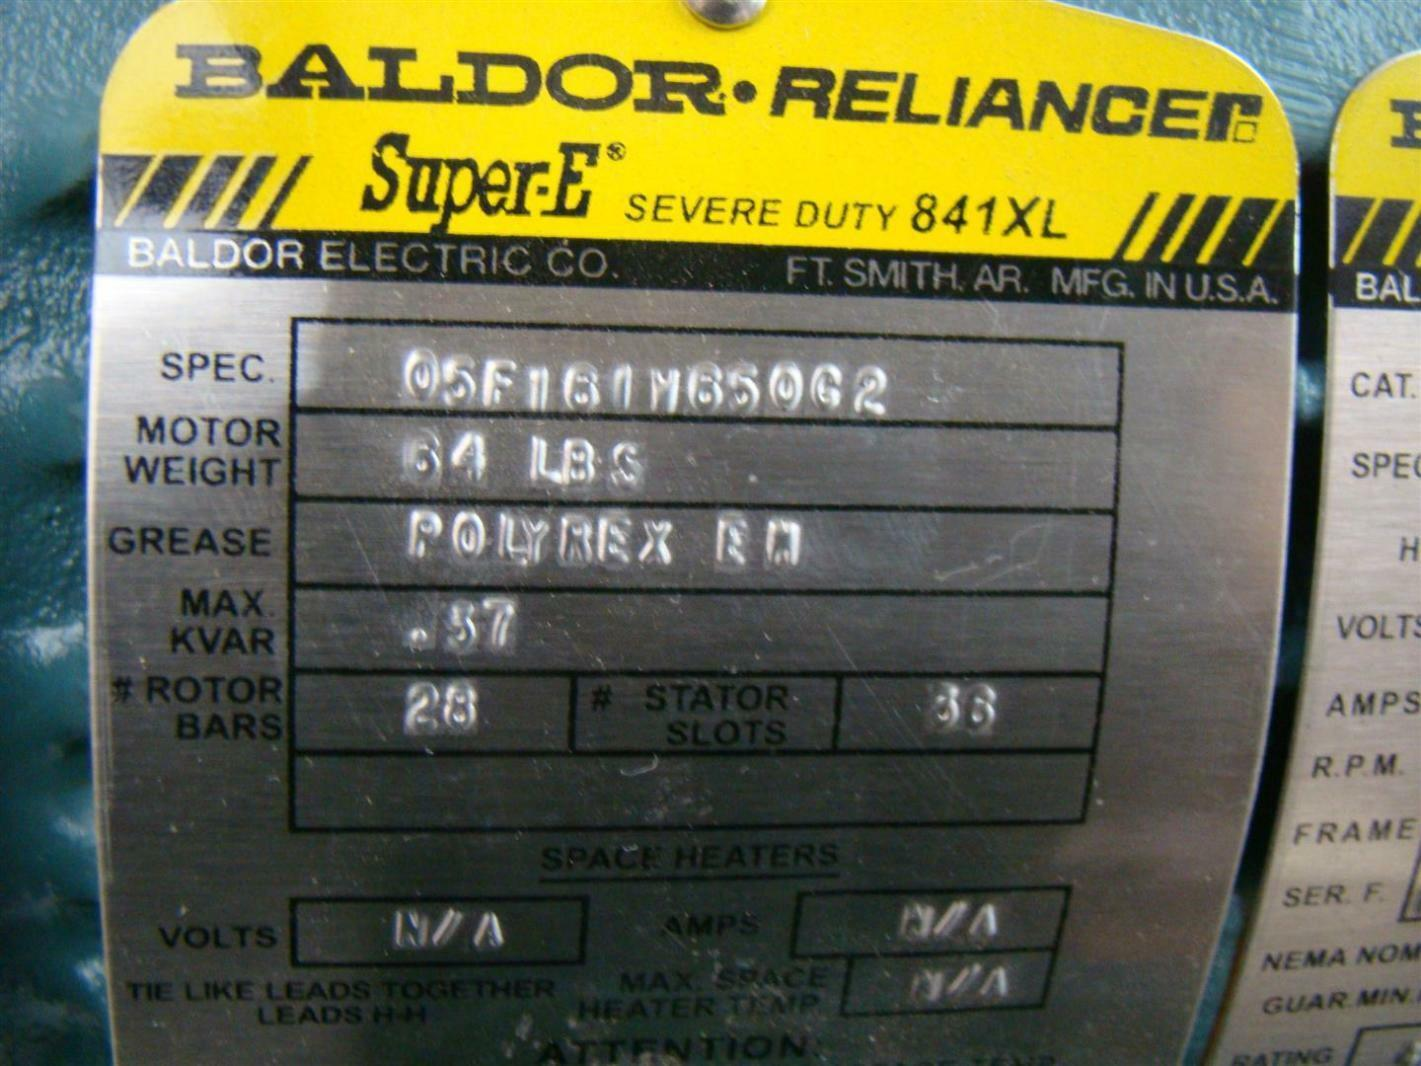 baldor reliance super e motor wiring diagram use case library management pictures to pin on pinterest pinsdaddy